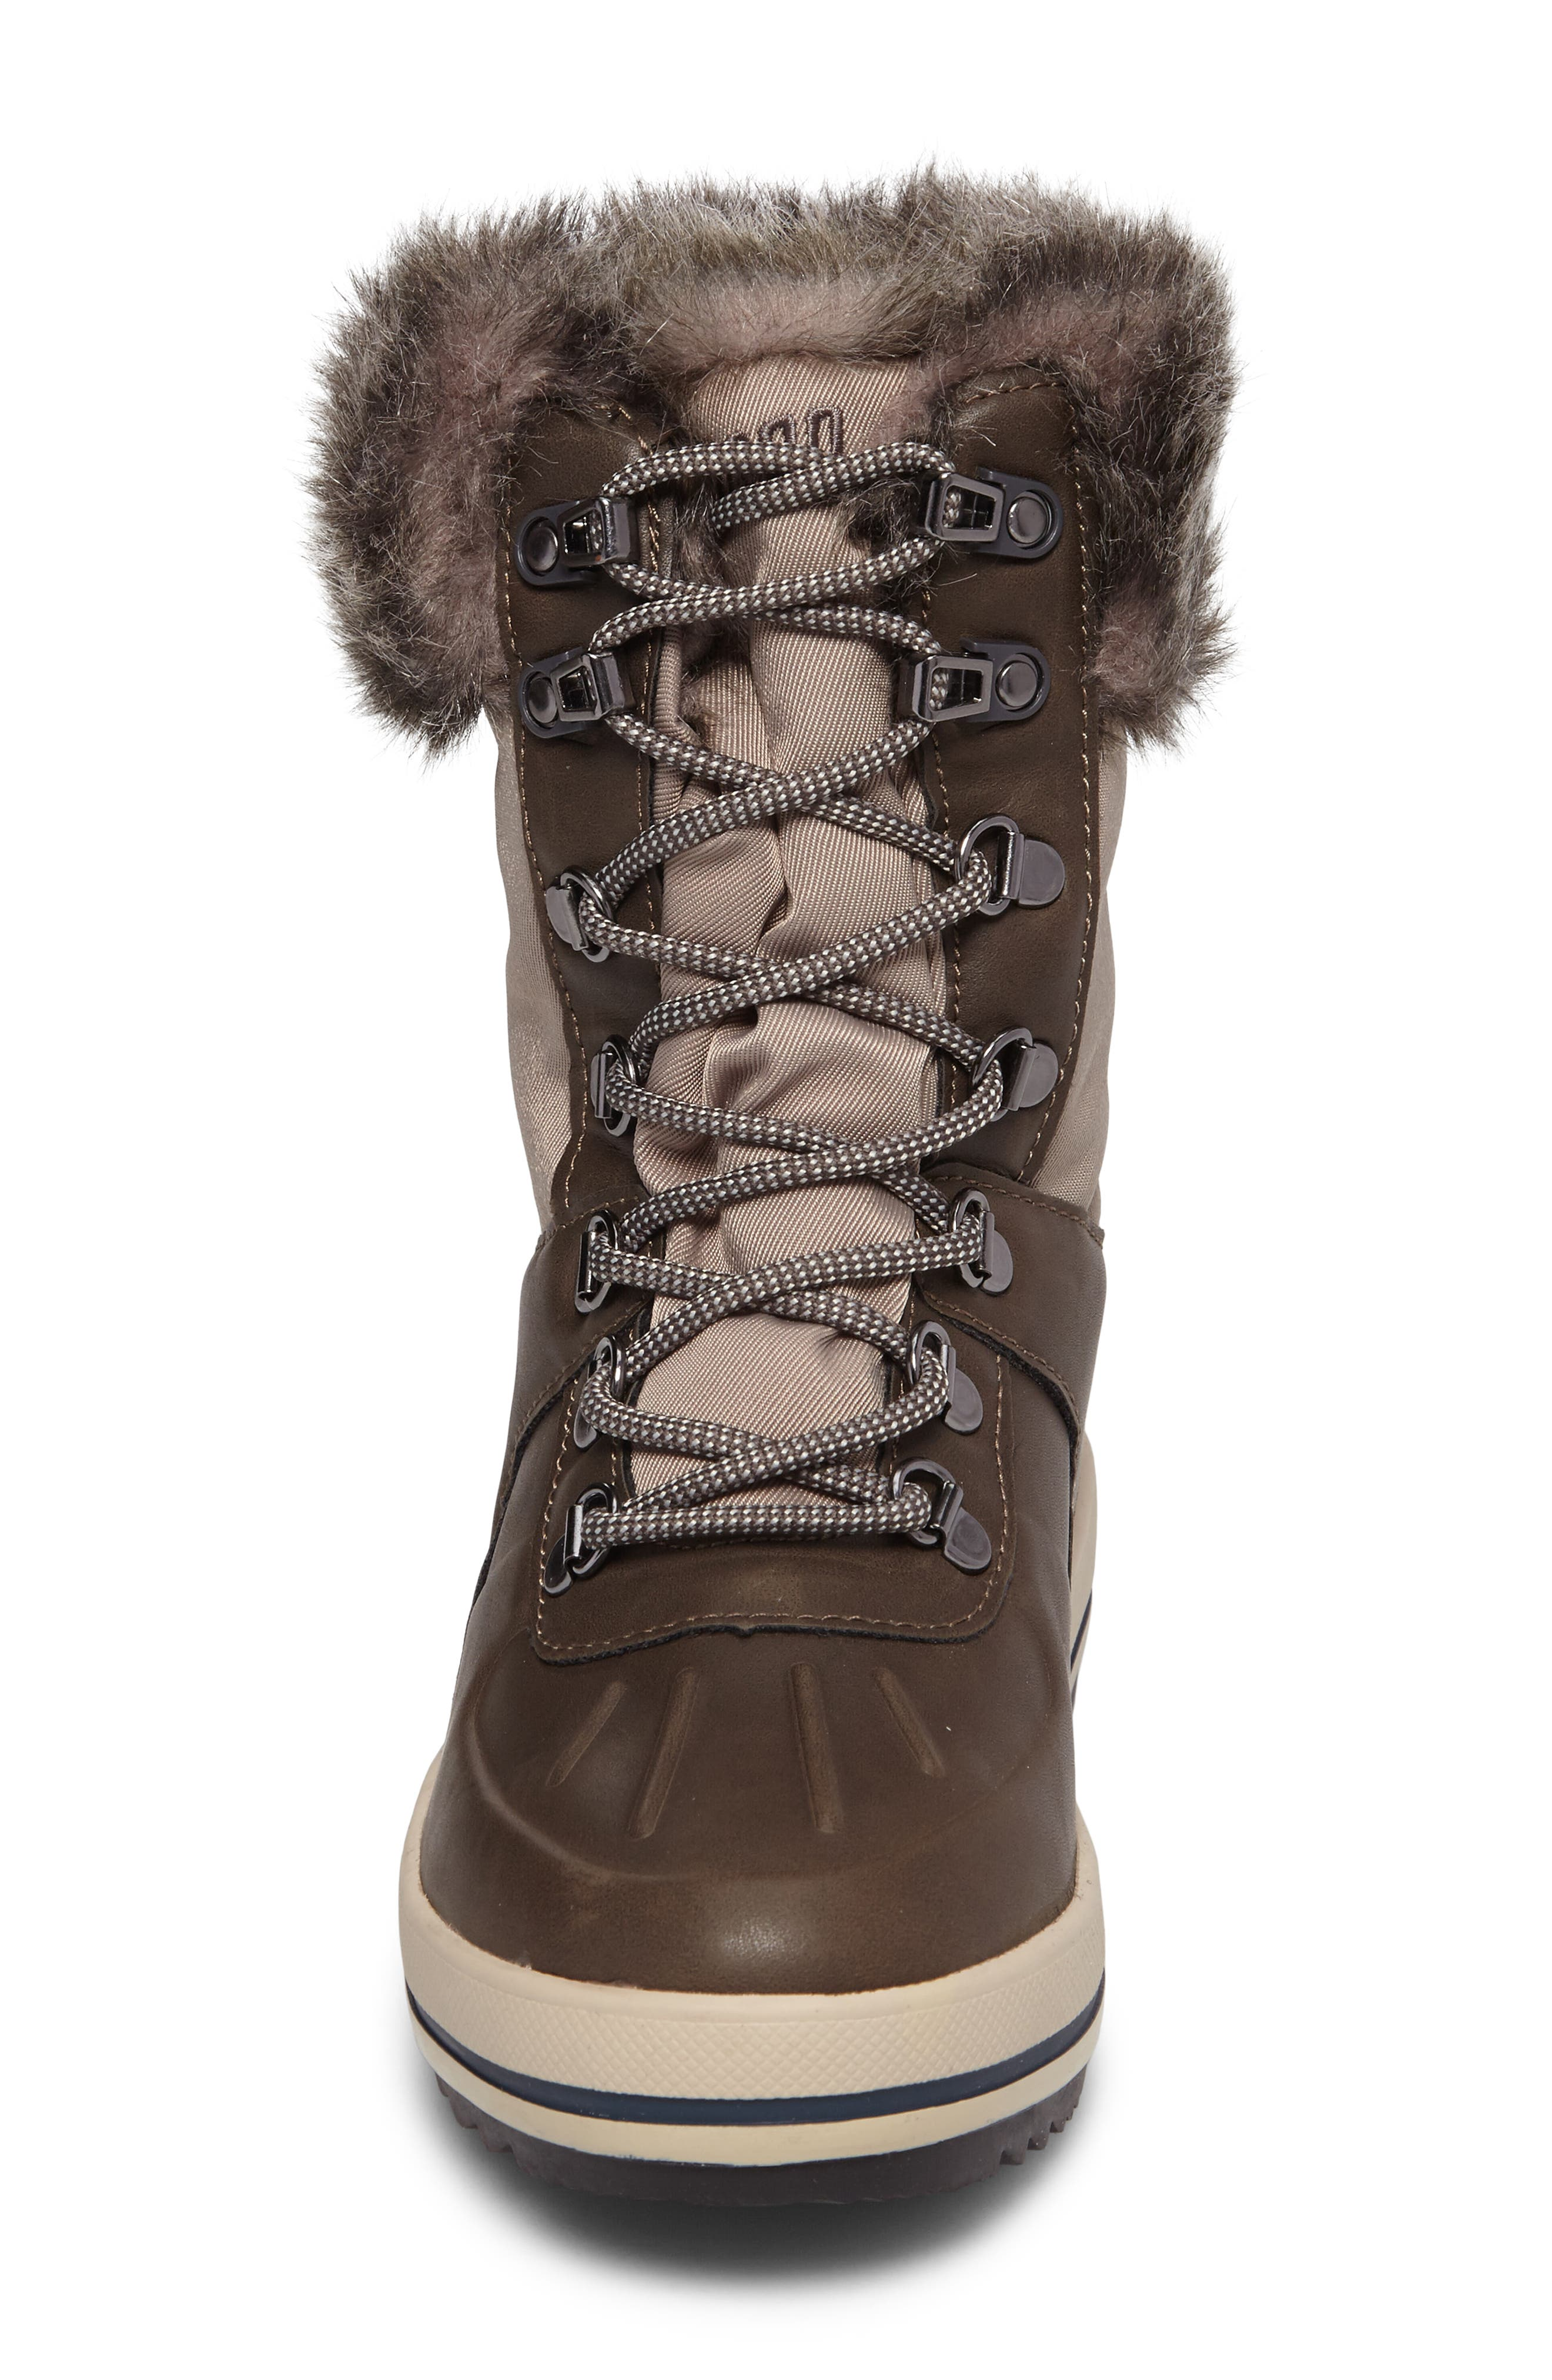 Viper Waterproof Snow Boot with Faux Fur Trim,                             Alternate thumbnail 4, color,                             Taupe/ Oatmeal